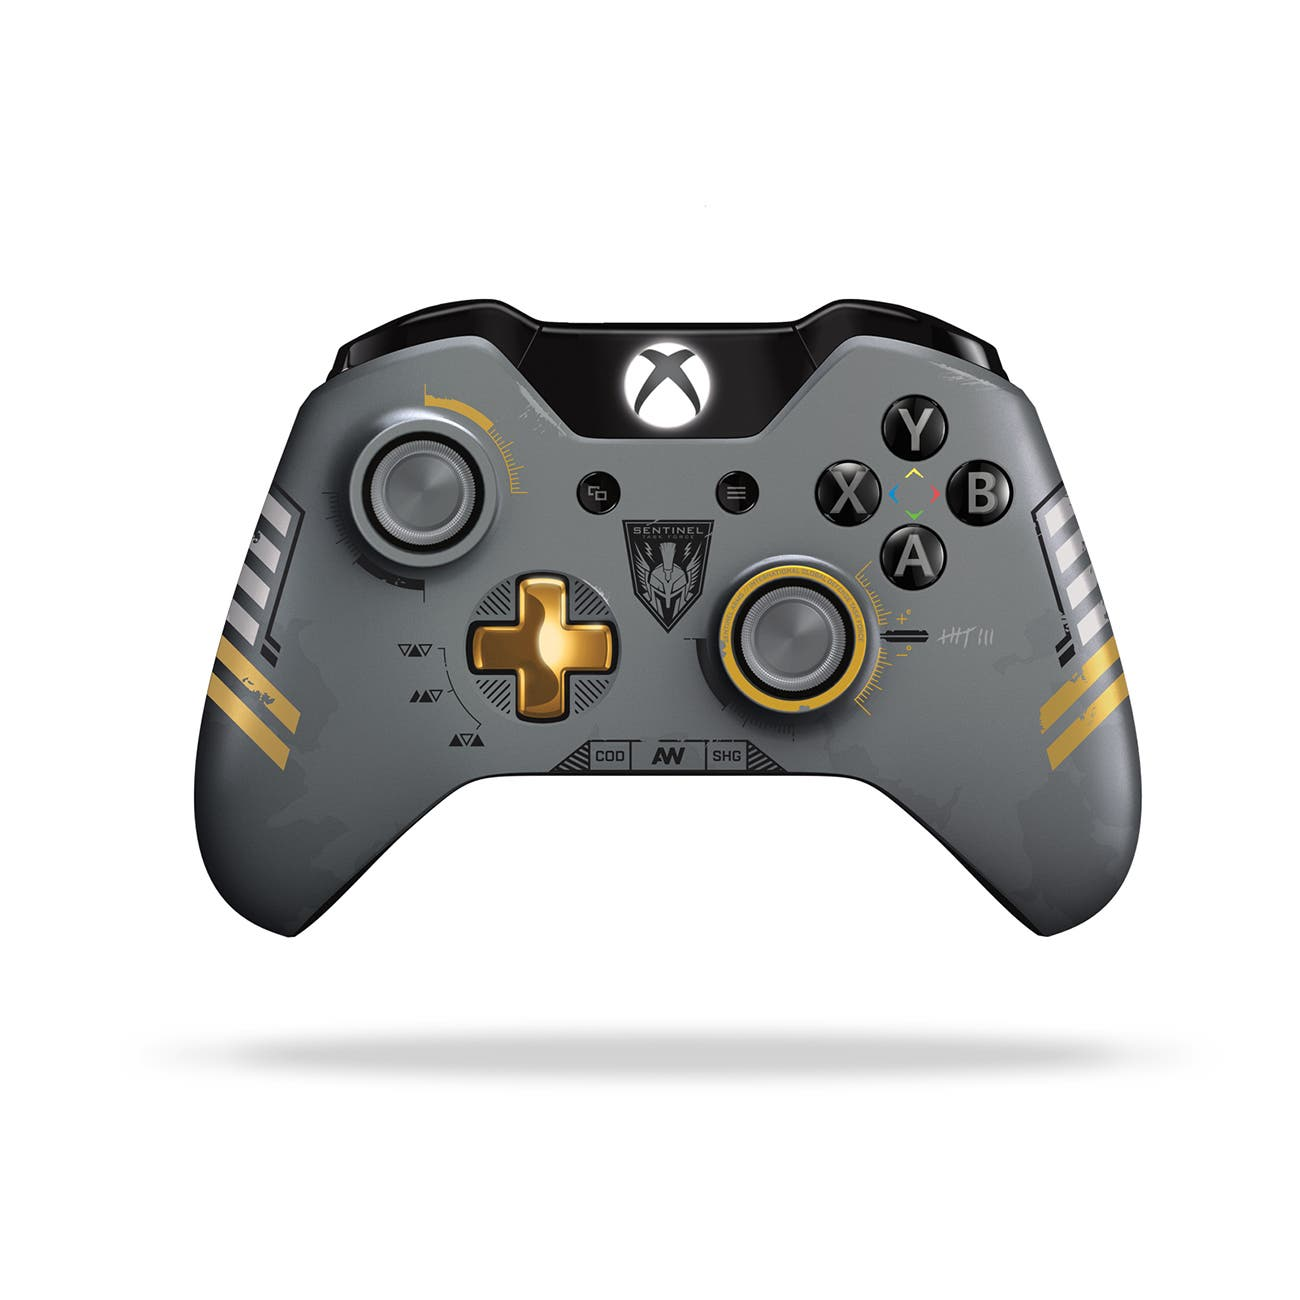 Mando Call of Duty Advanced Warfare Xbox One frontal low